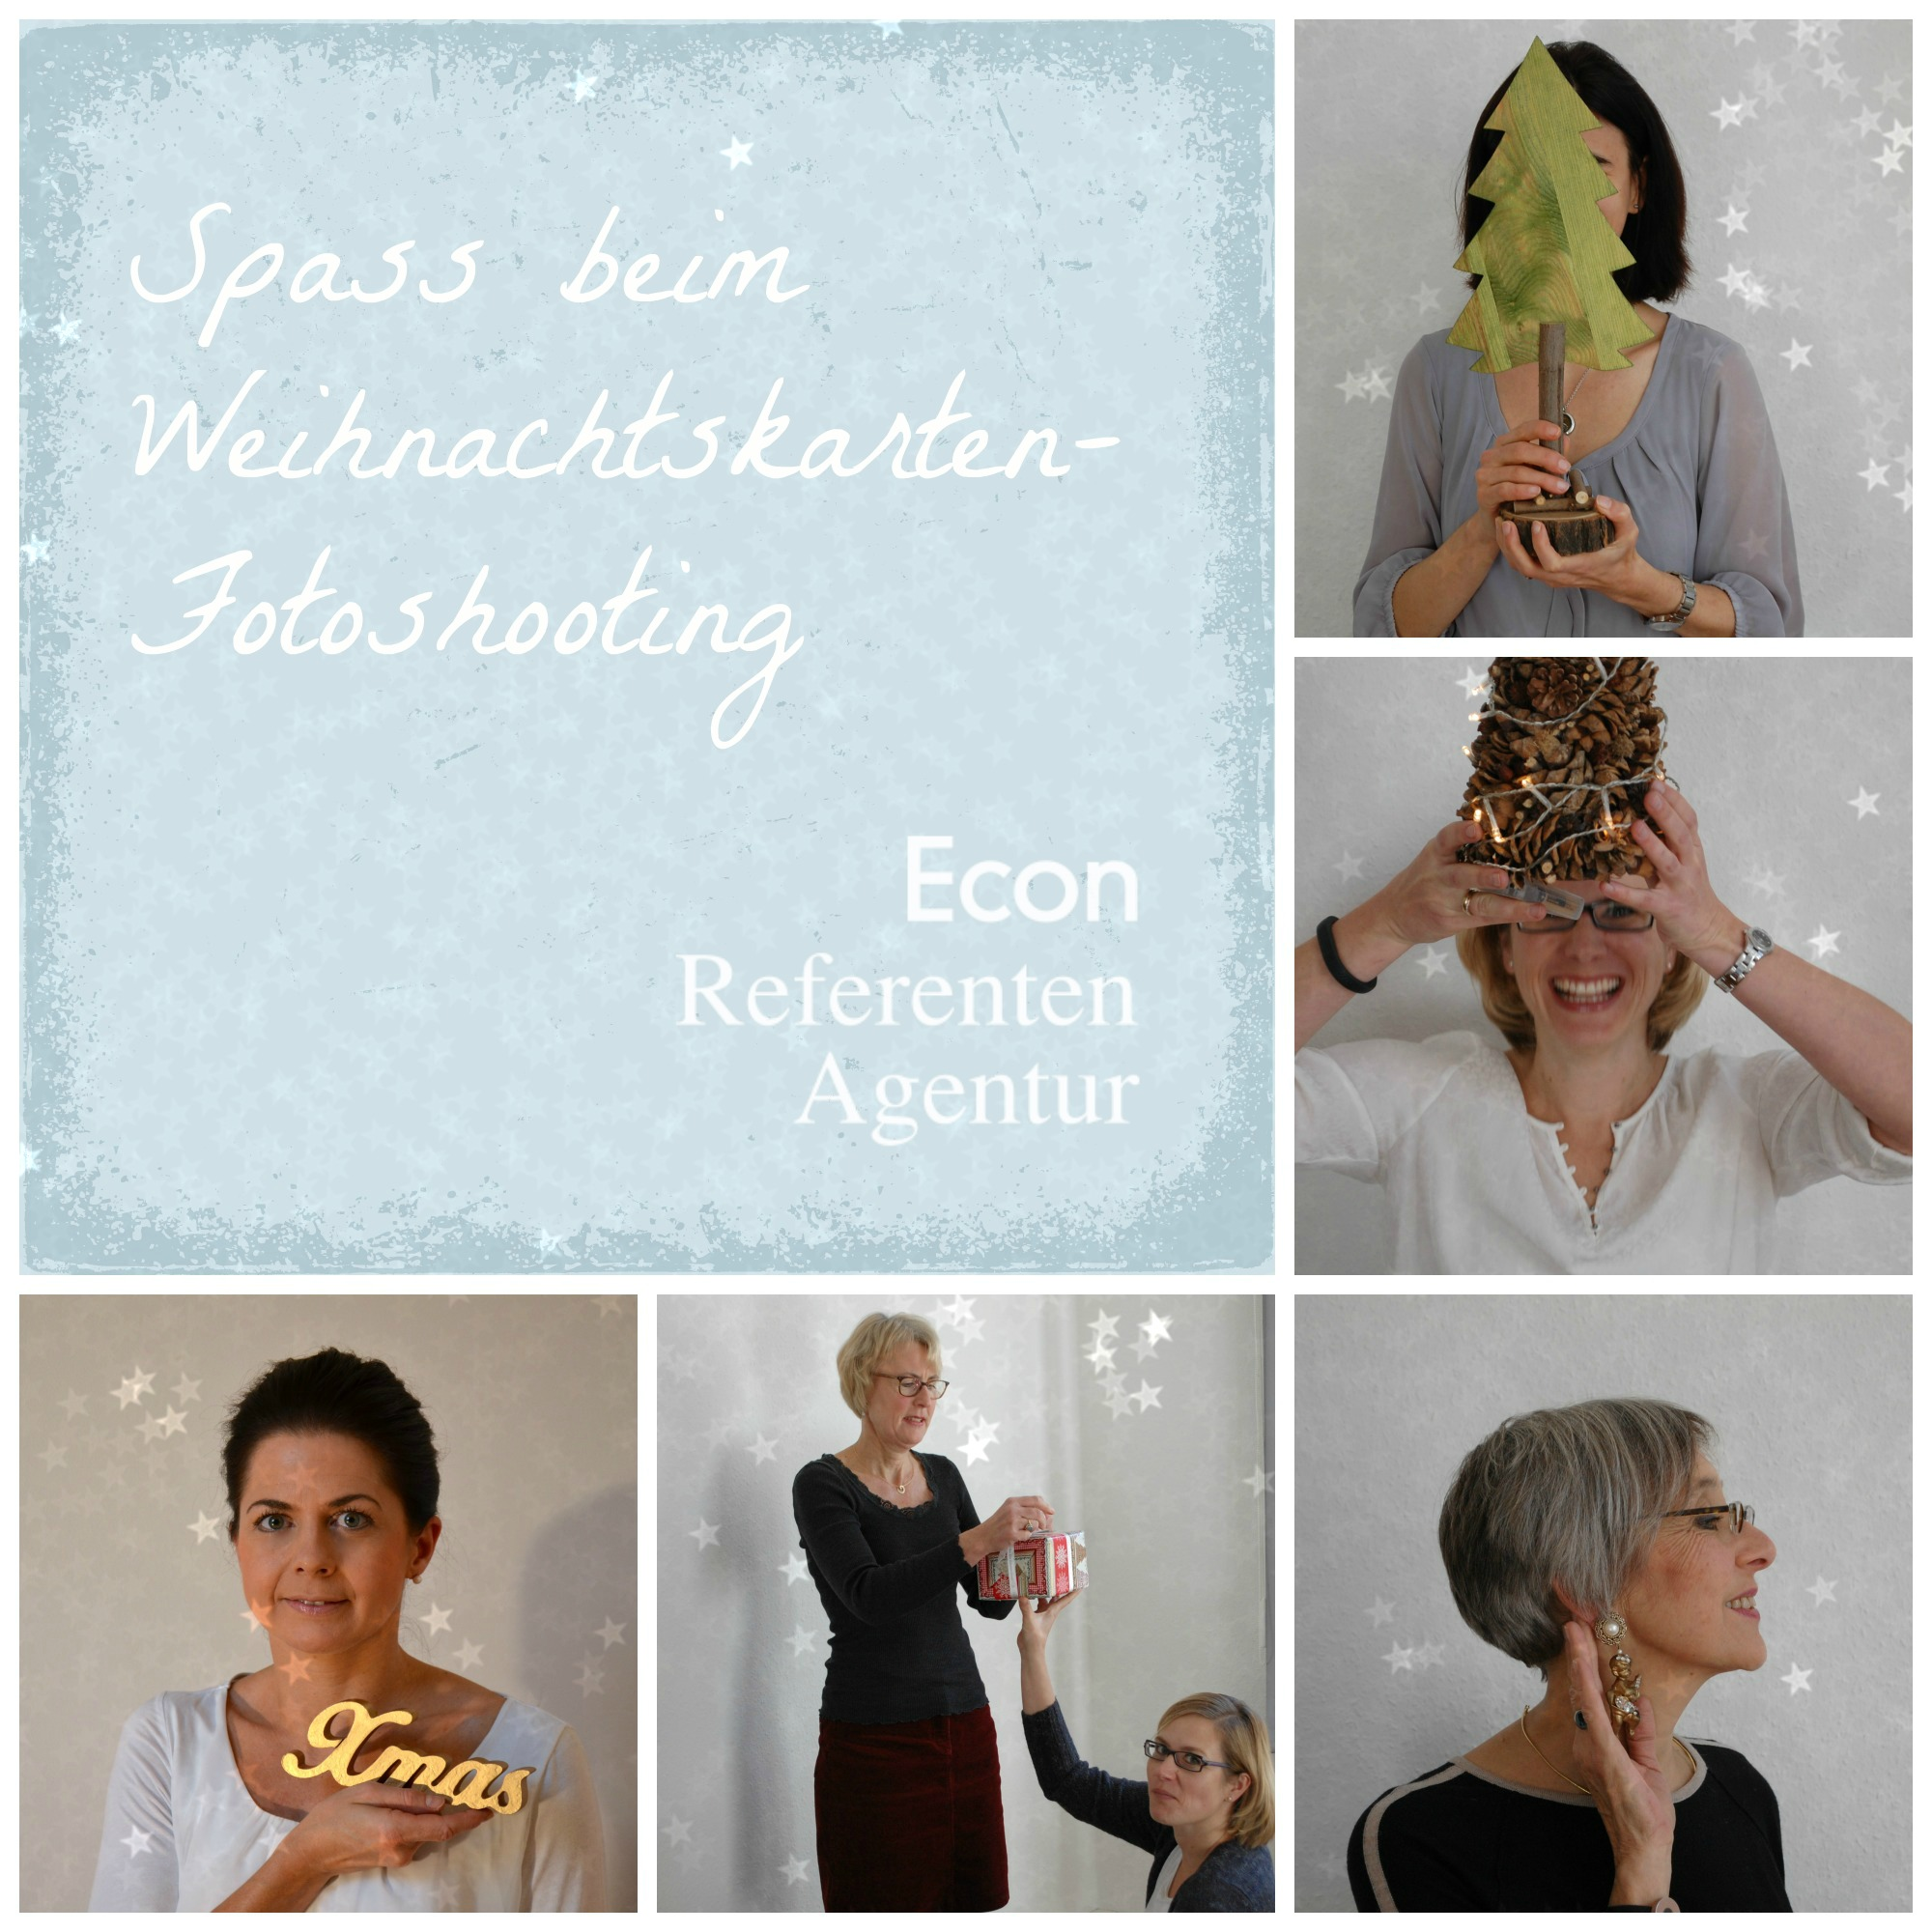 ECON Referenten_Collage Weihnachten